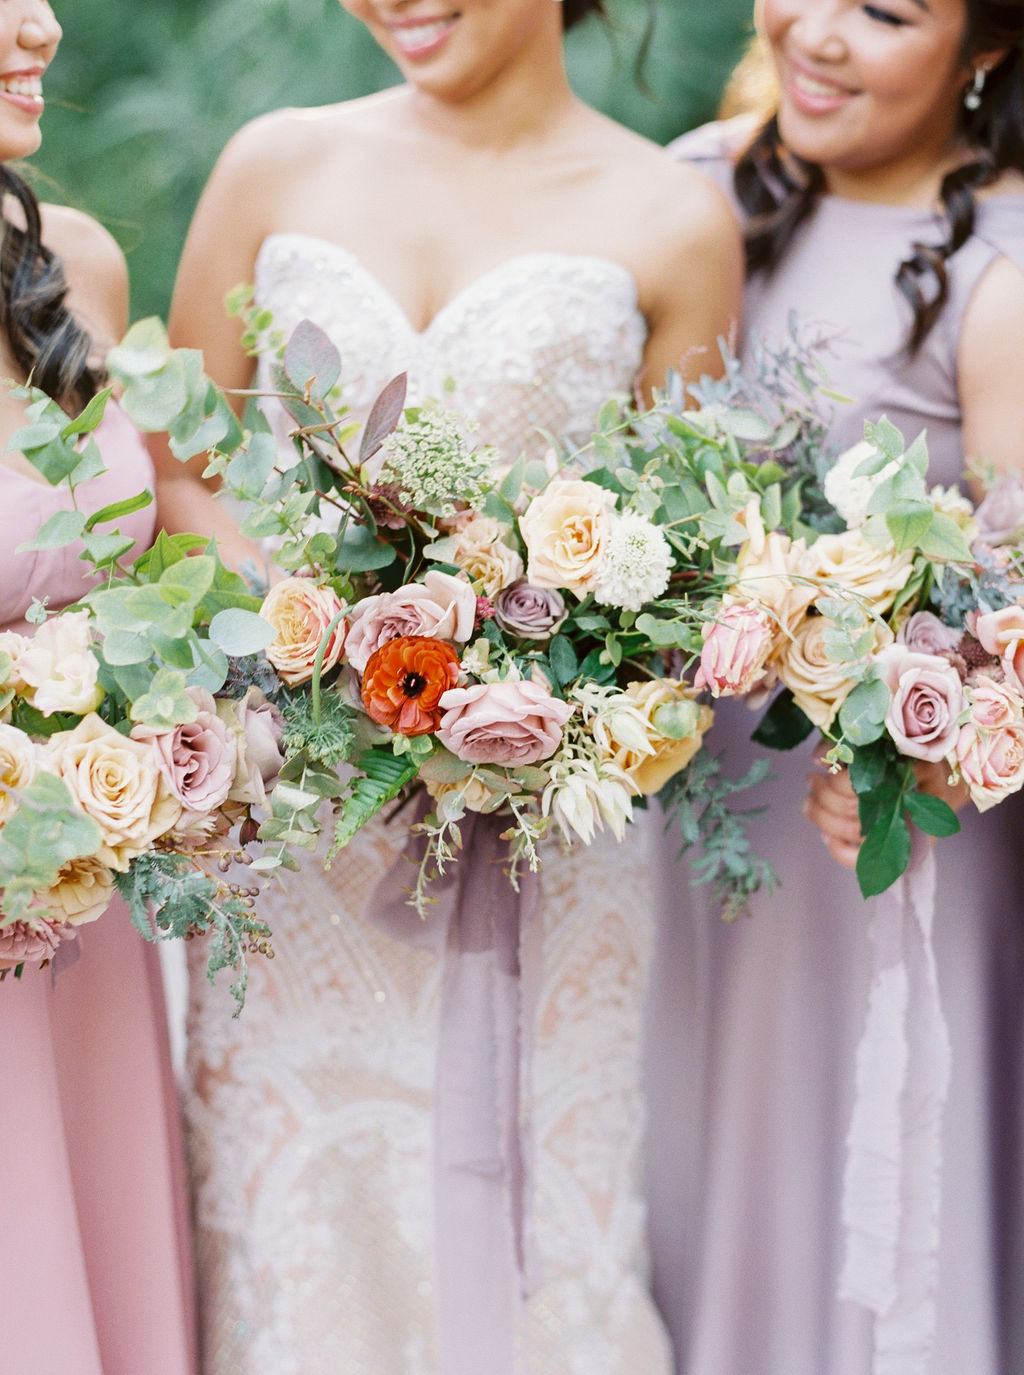 Lush, Organic Bridal Party Flowers by Finding Flora